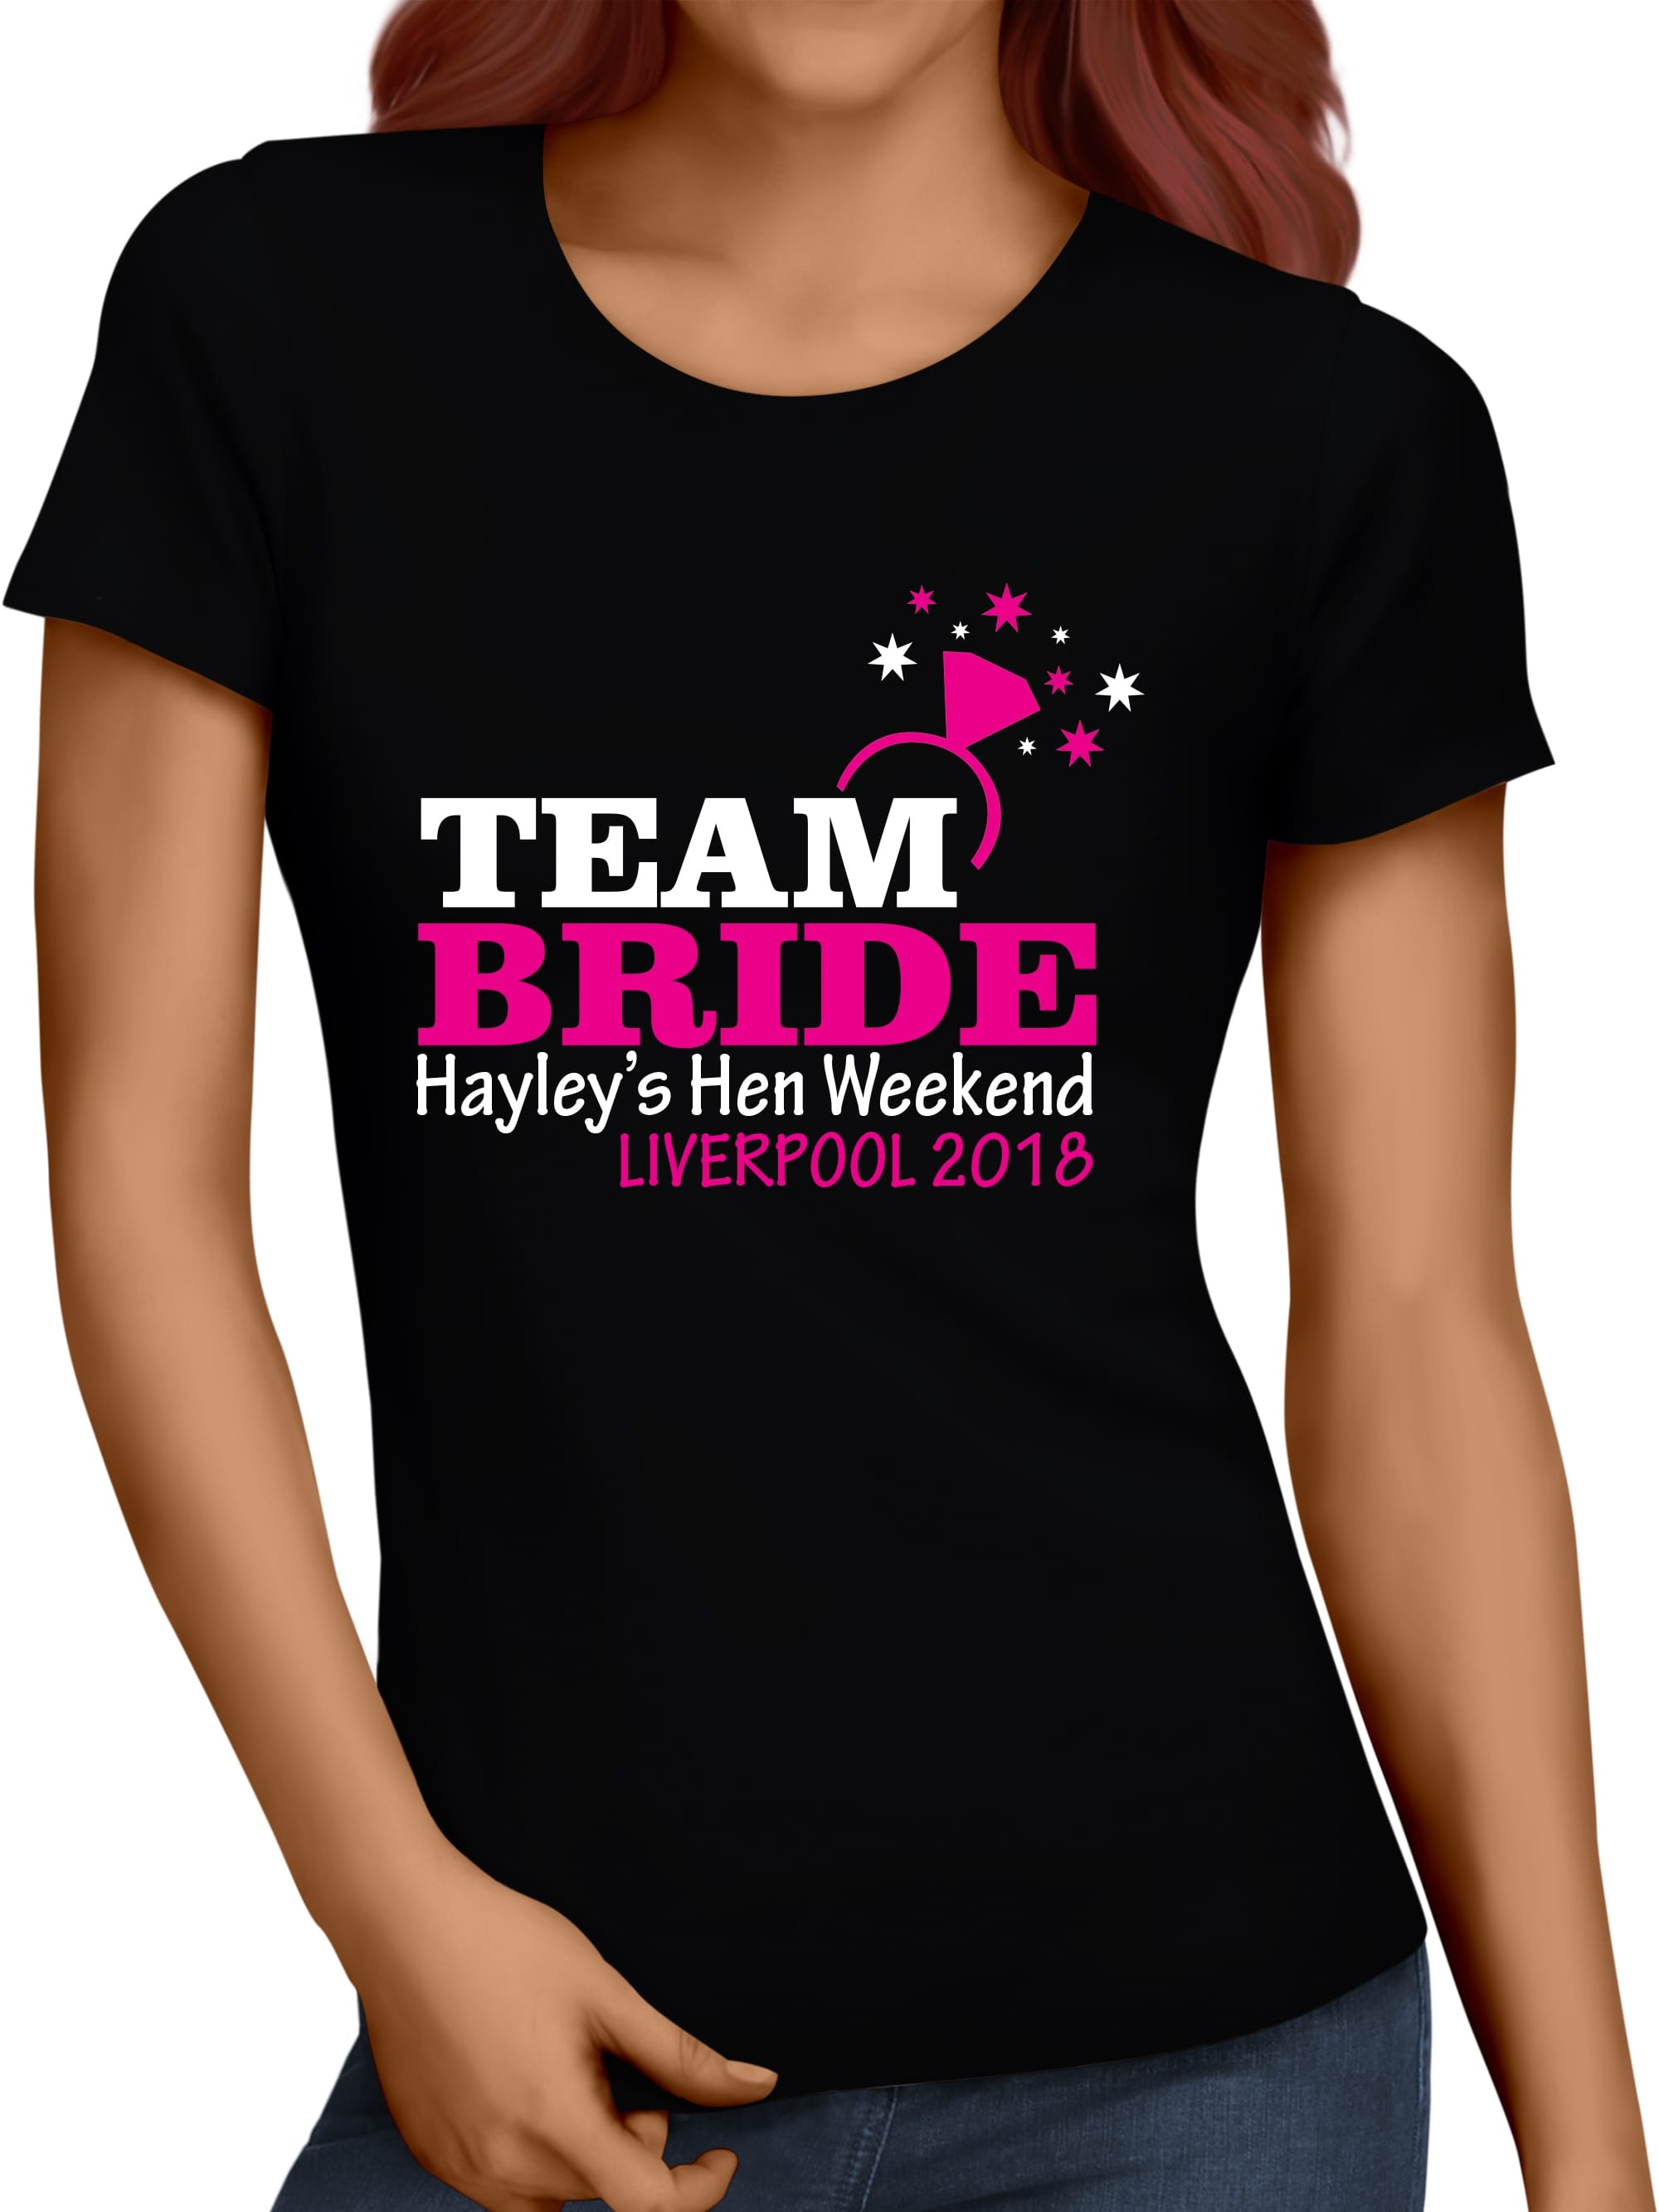 Team bride personalised t shirt vest top hen party for Hen party t shirts